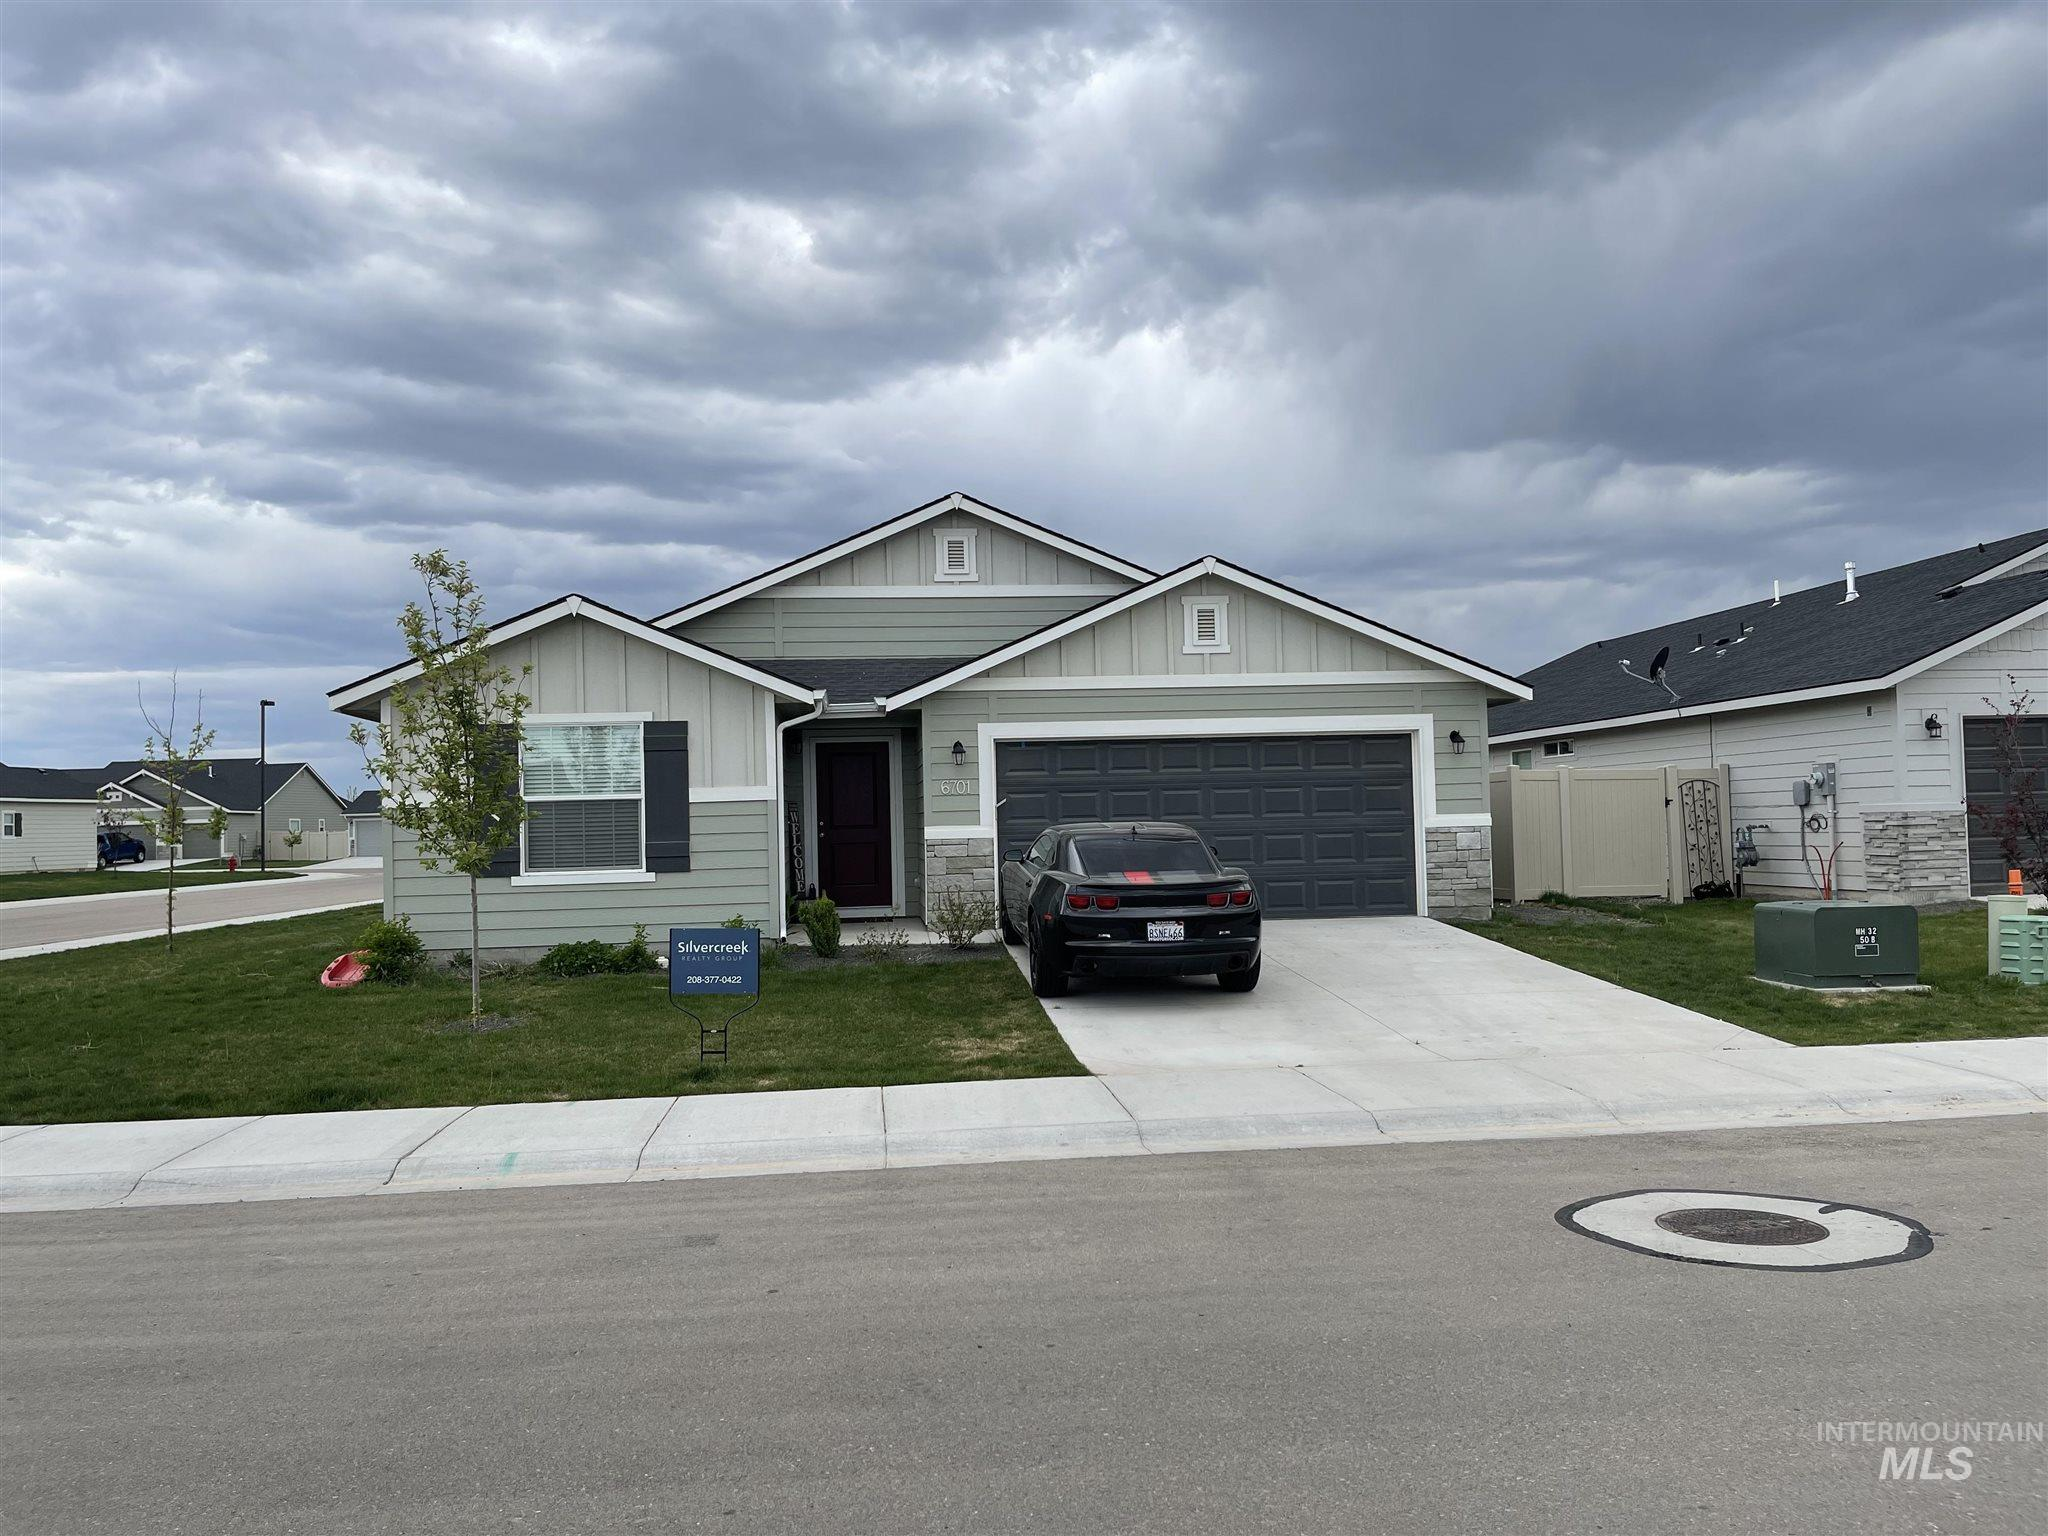 6701 S Allegiance ave Property Photo - Kuna, ID real estate listing